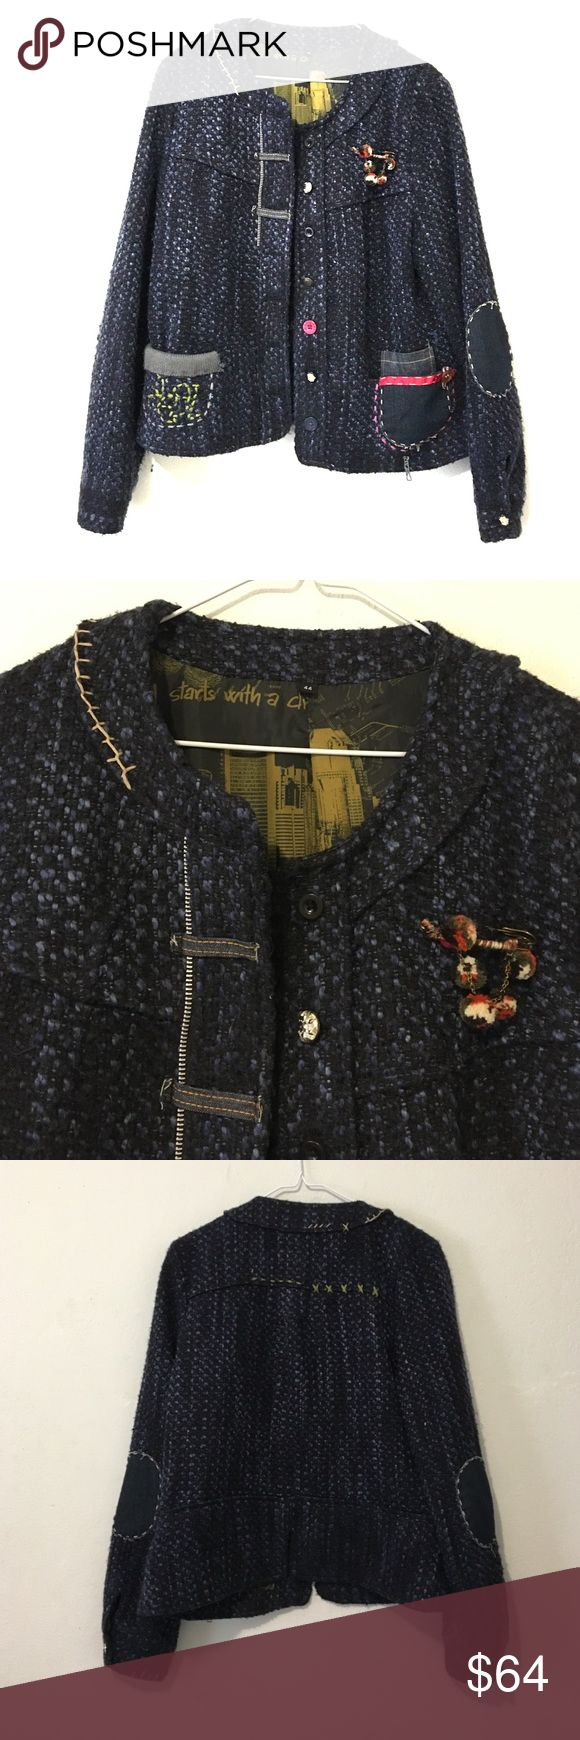 Desigual Blue Knit Button Up Jacket Size 44 (EUR) - Size 12 (US) - Recommended: Medium - Purchased in Barcelona, Spain - In Excellent condition - Offers welcome :) Shoulder to shoulder: 16 in // Length: 24 in Desigual Jackets & Coats